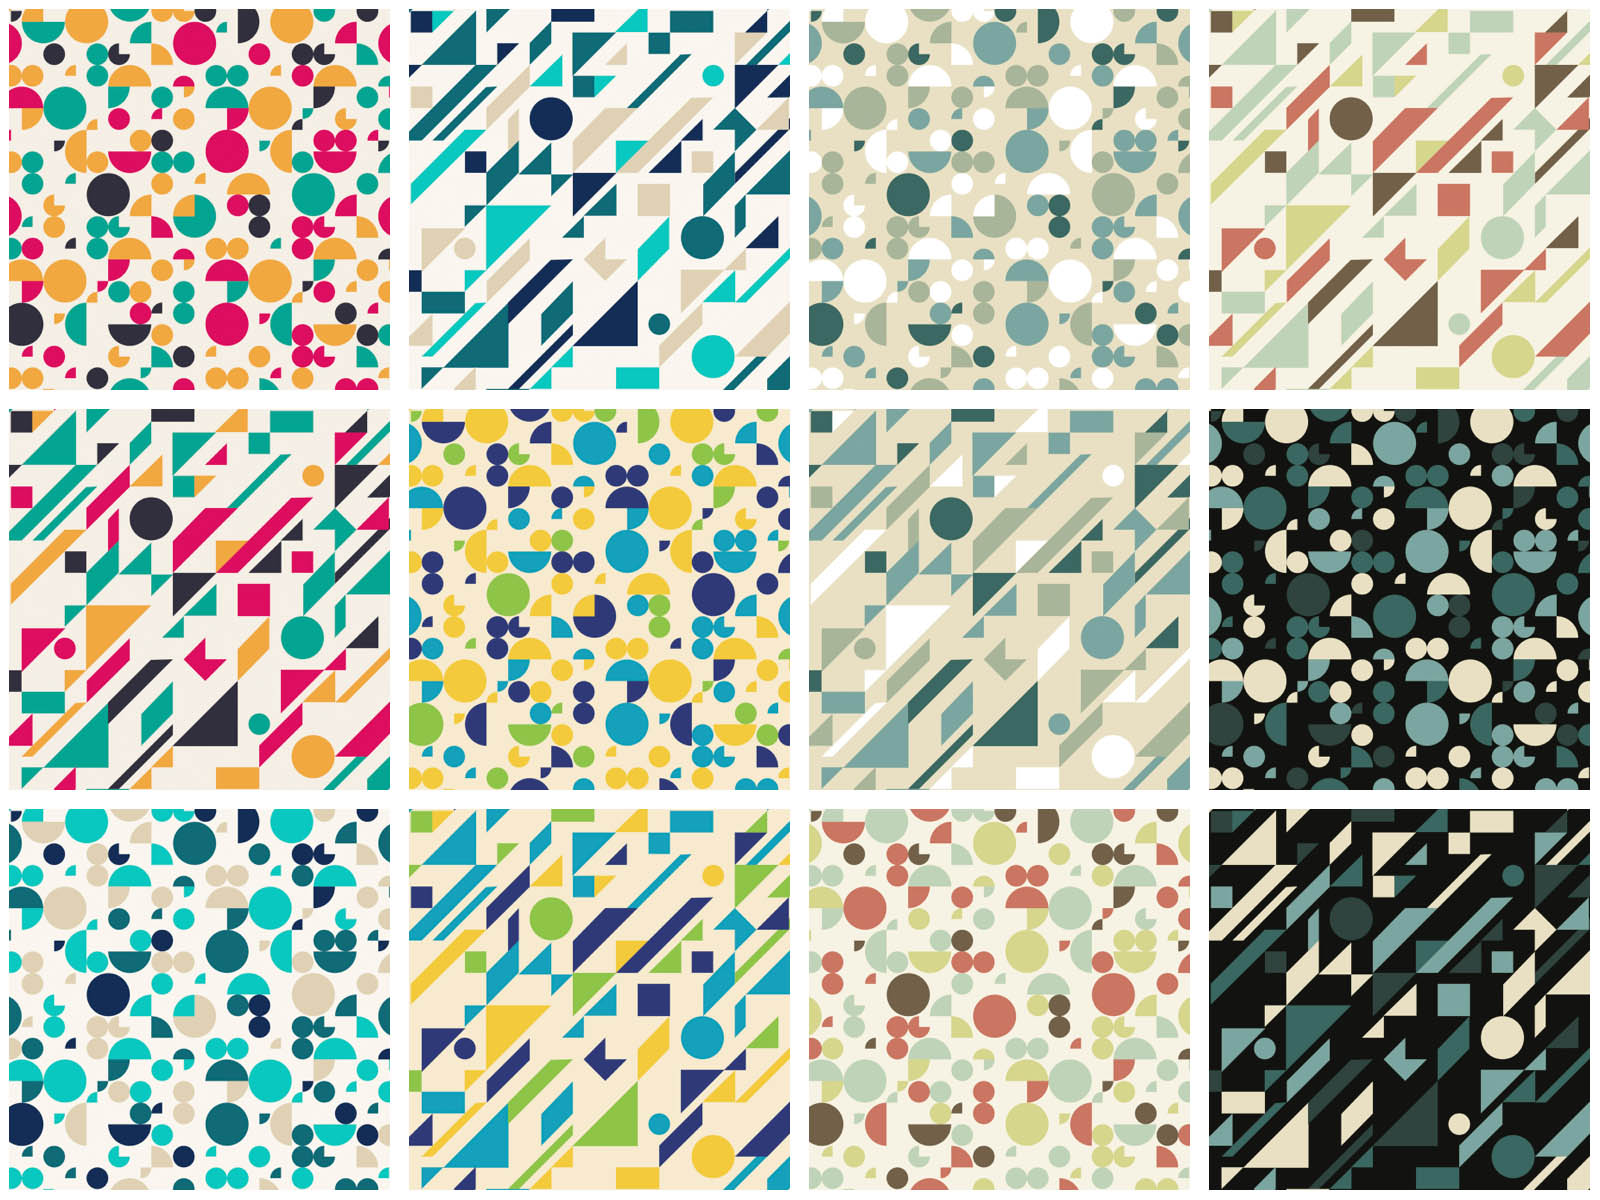 Geometric Design Patterns Vector